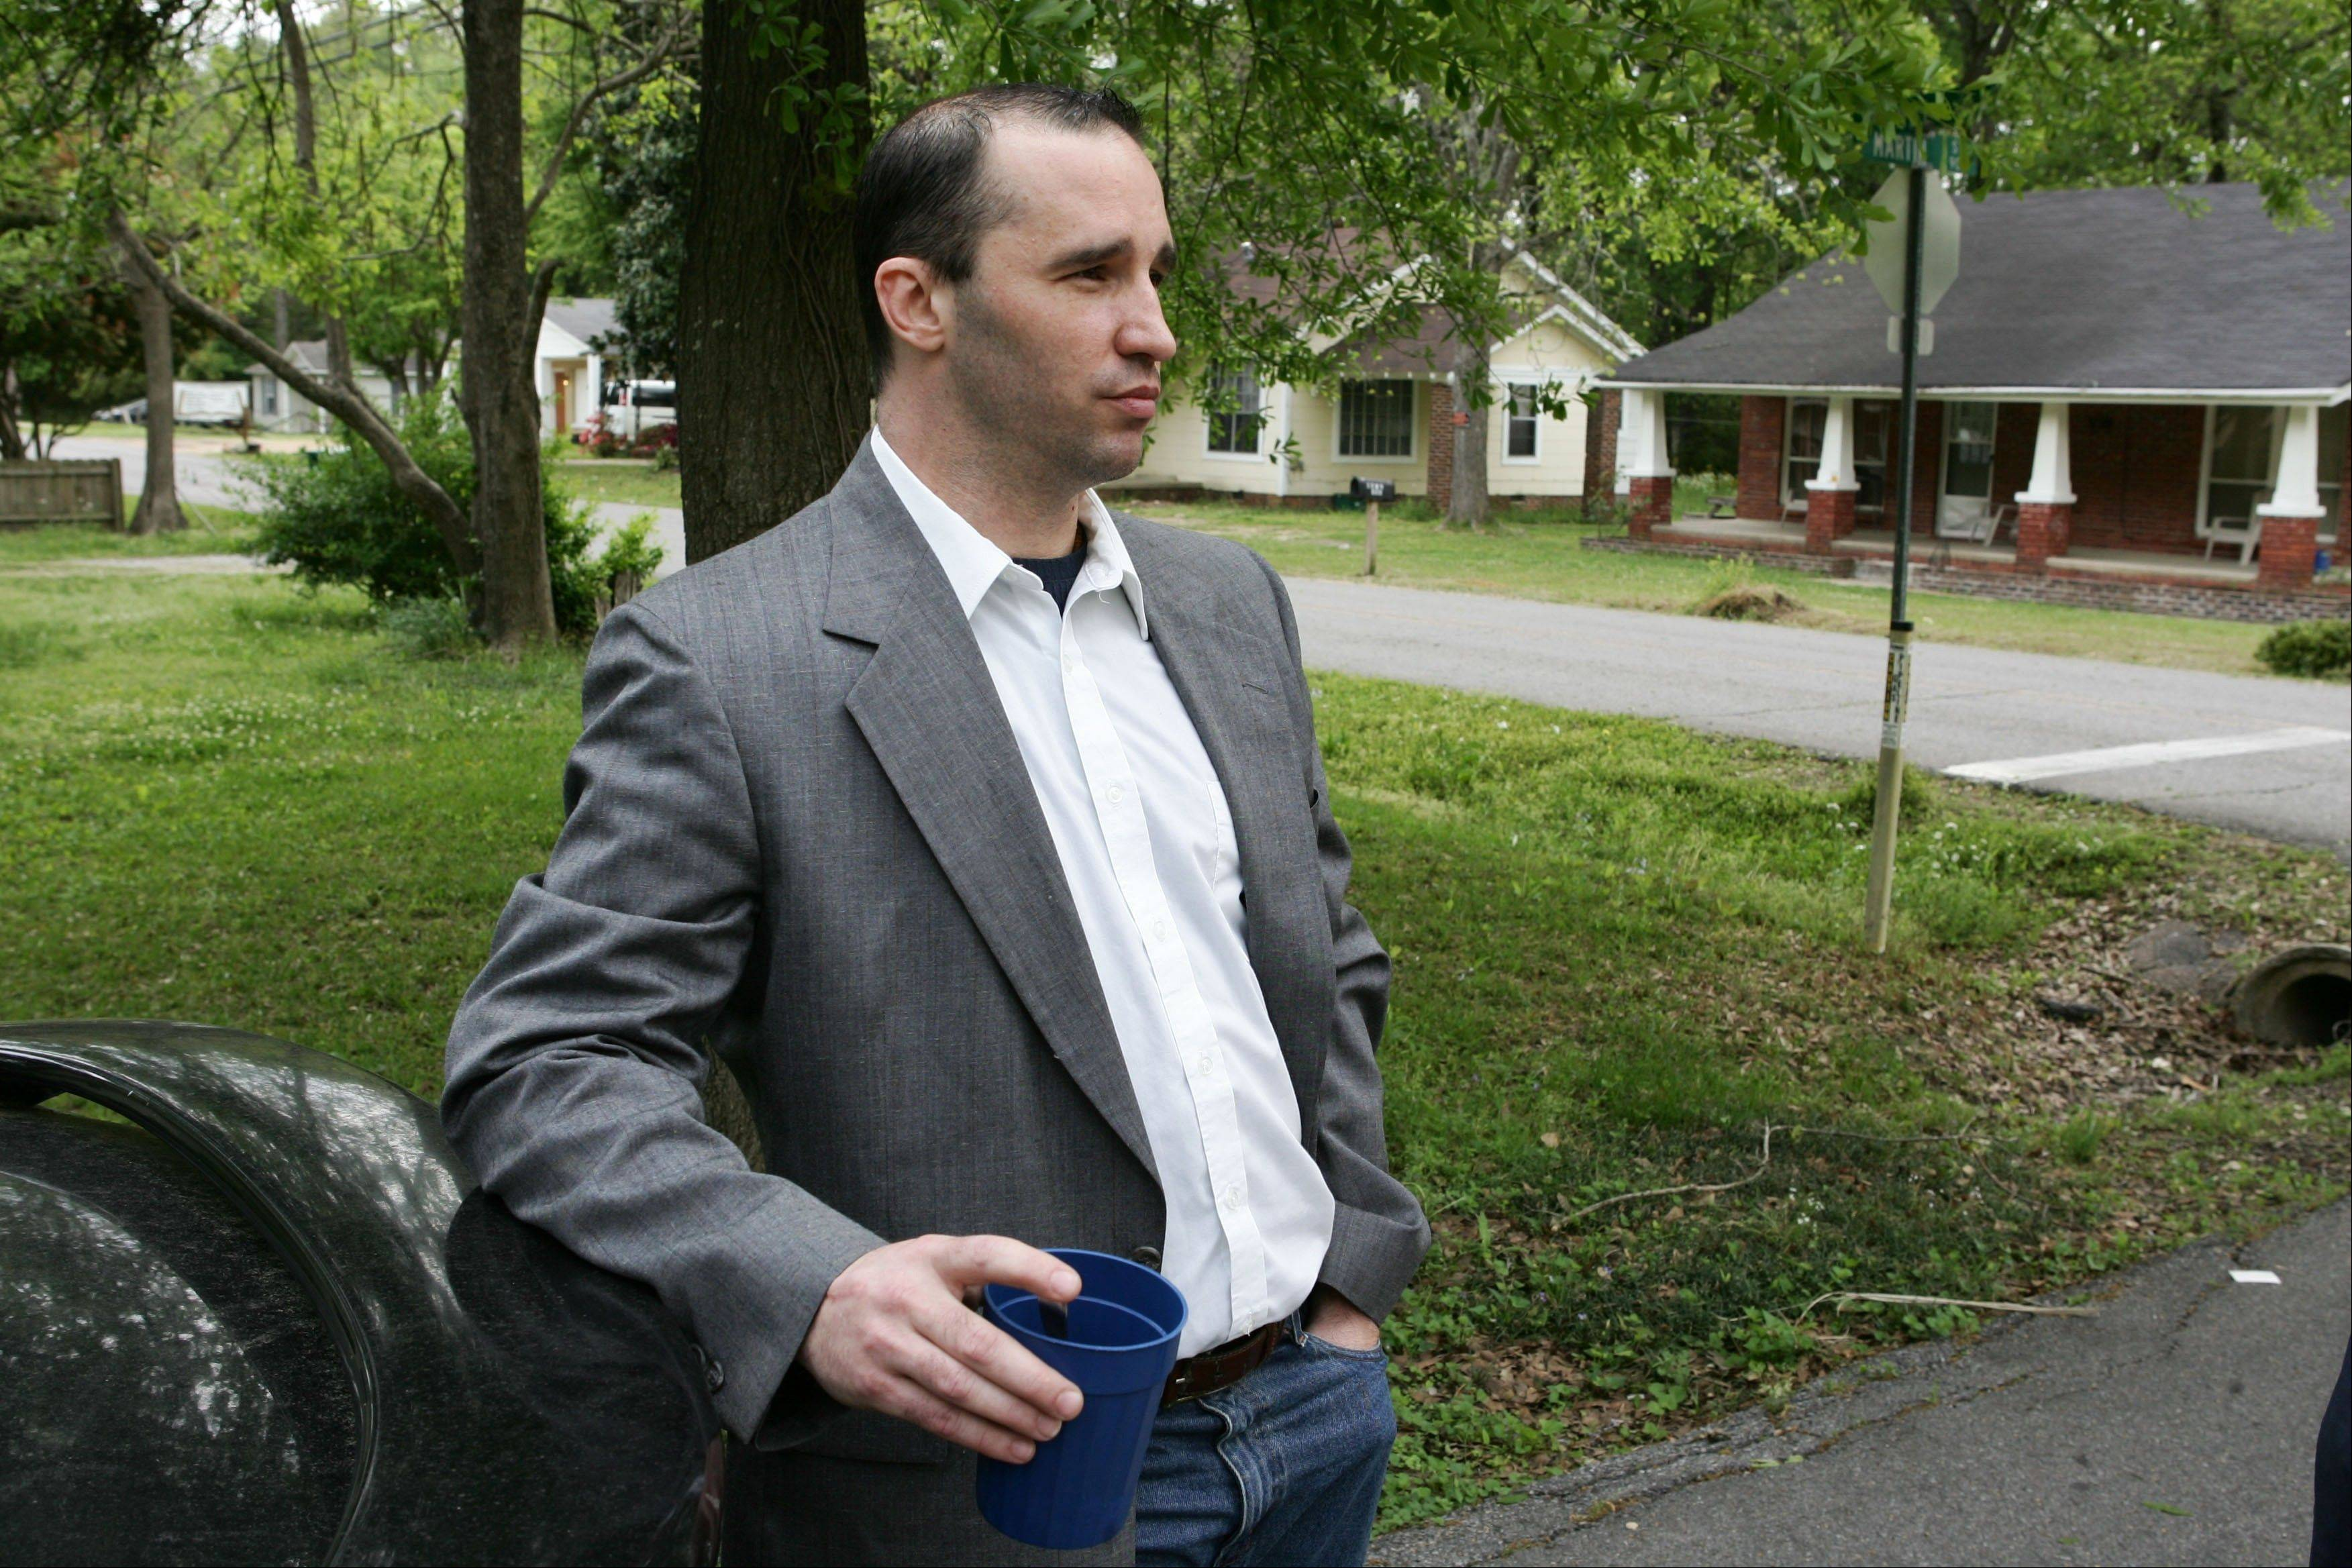 James Everett Dutschke stands in the street near his home in Tupelo, Miss.